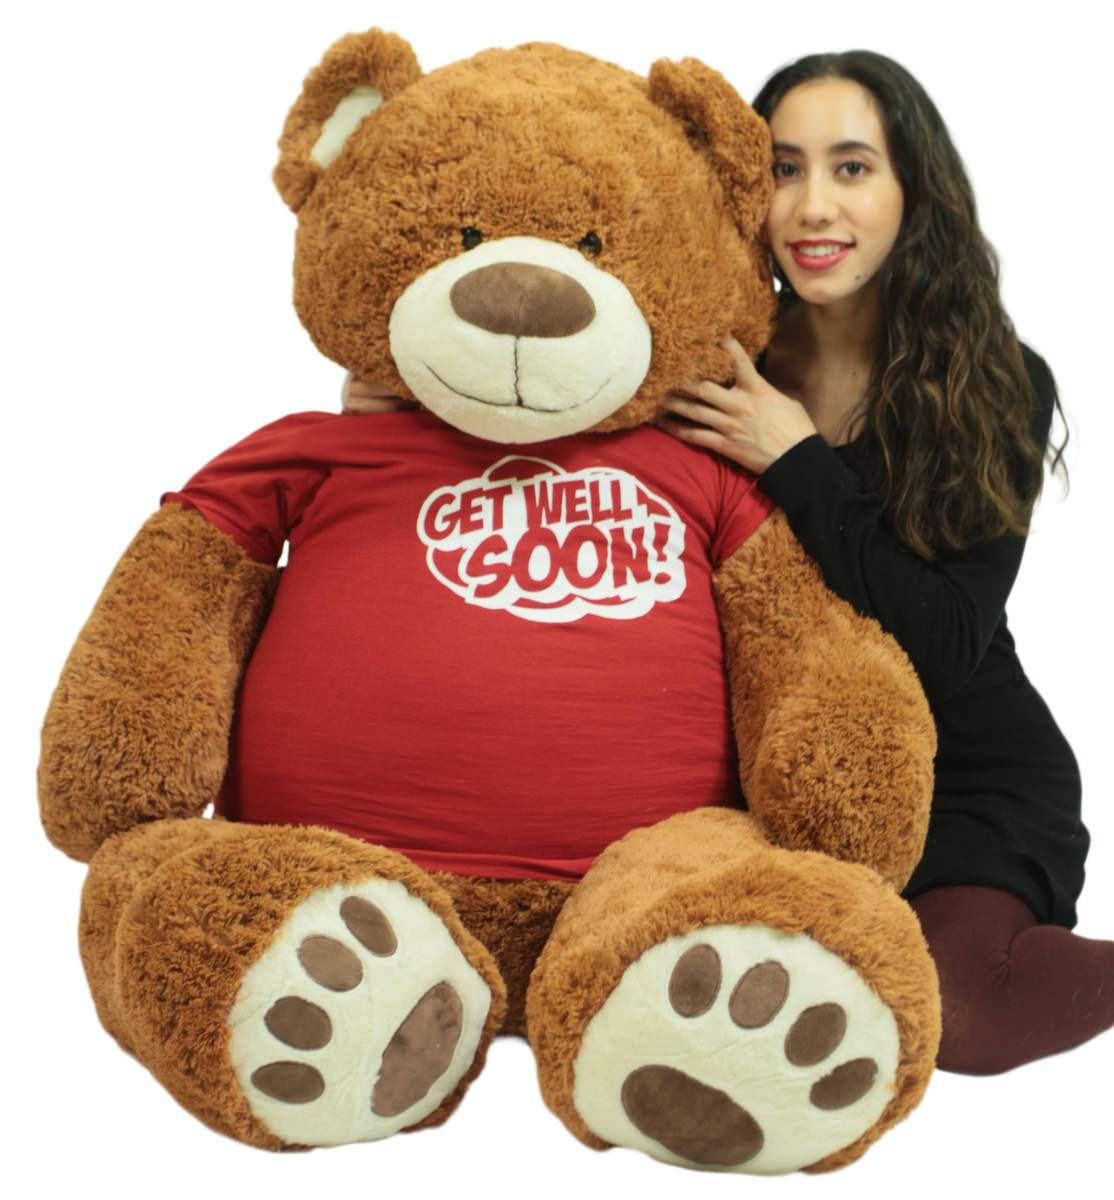 Get Well Soon Giant Teddy Bear 5 ft Soft 60 Inch, Wears Removable T-shirt Get Well Soon, Cookie Dough Color by BigPlush